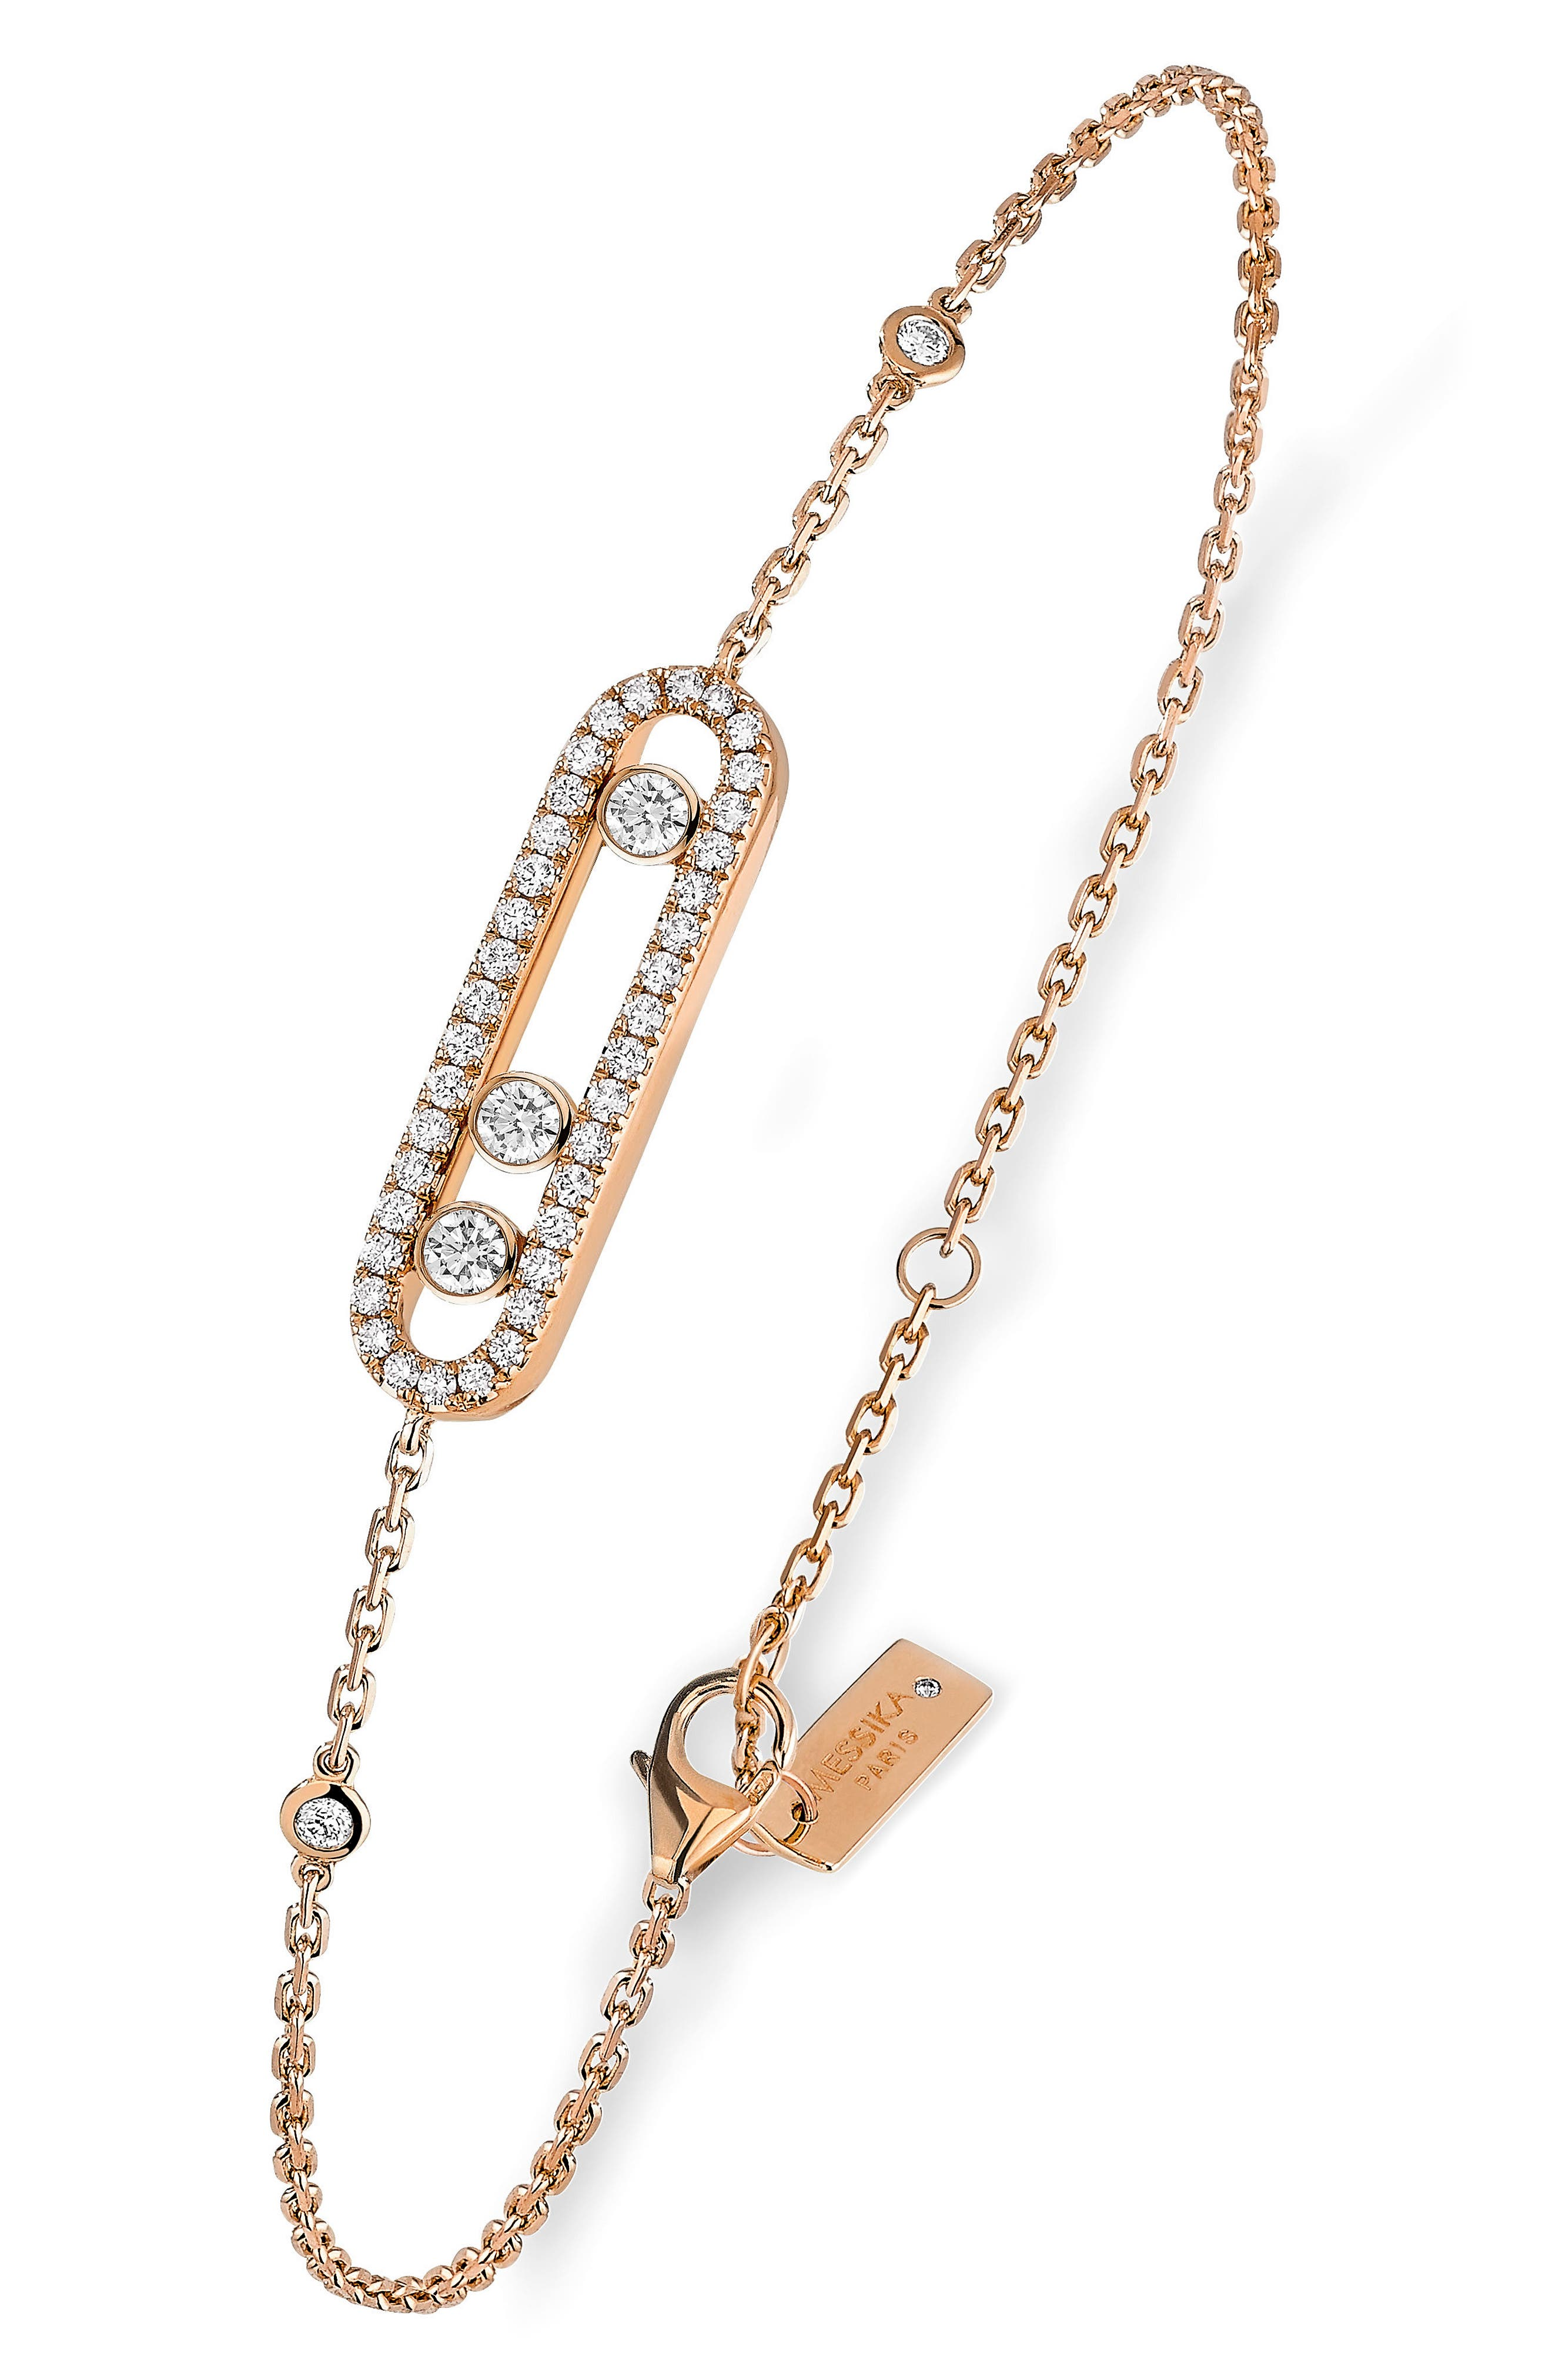 Baby Pavé Move Diamond Bracelet,                             Main thumbnail 1, color,                             ROSE GOLD